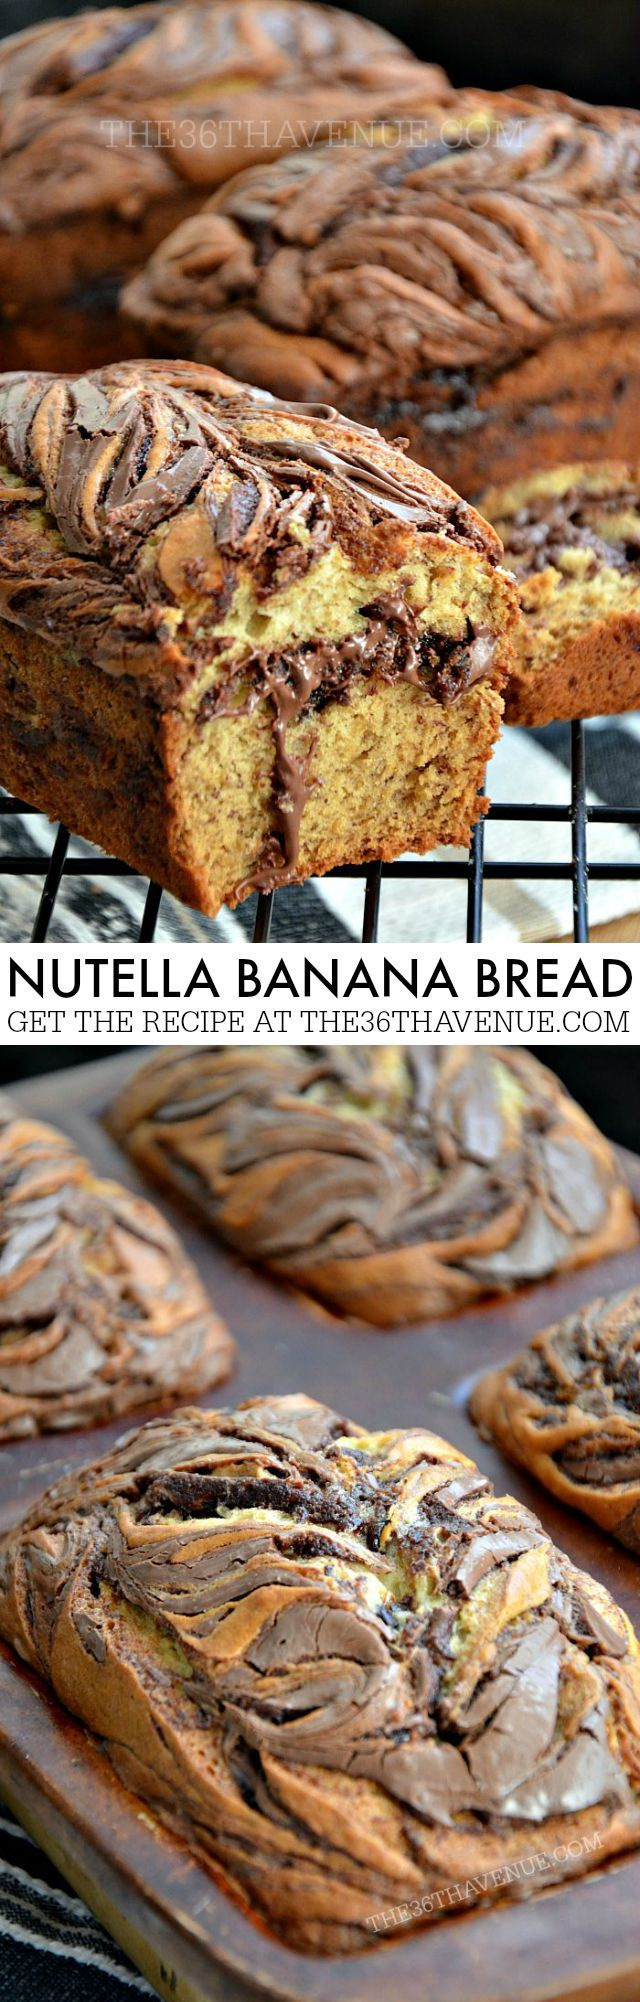 Recipe - Nutella Banana Bread at the36thavenue.com PIN IT NOW AND MAKE IT LATER!